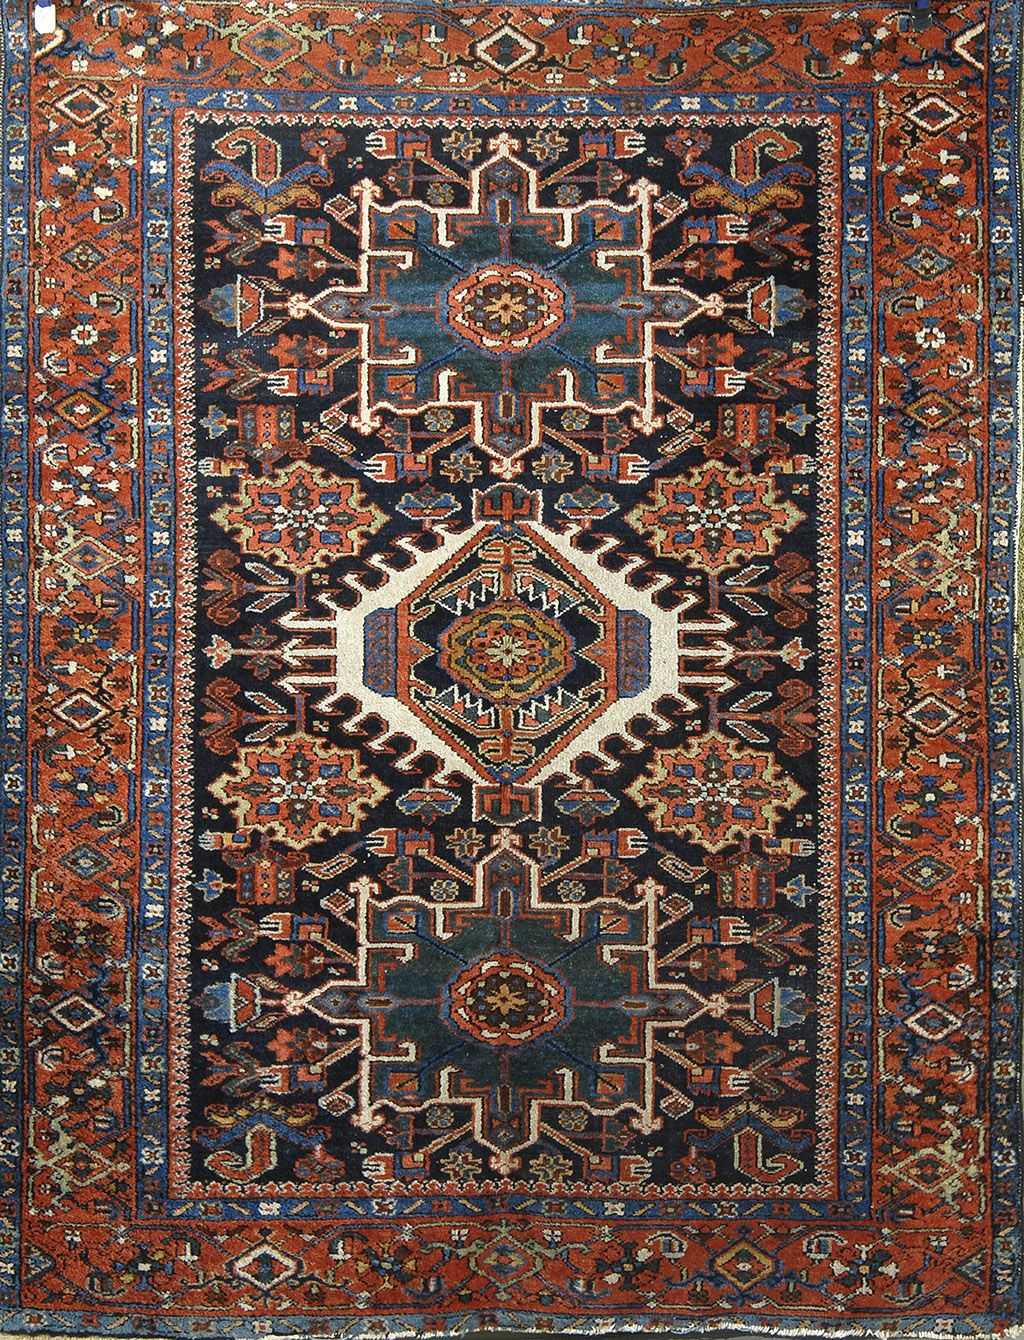 Oriental Rugs At Auction Spring Americana Eldred S House Persian Carpet Rug